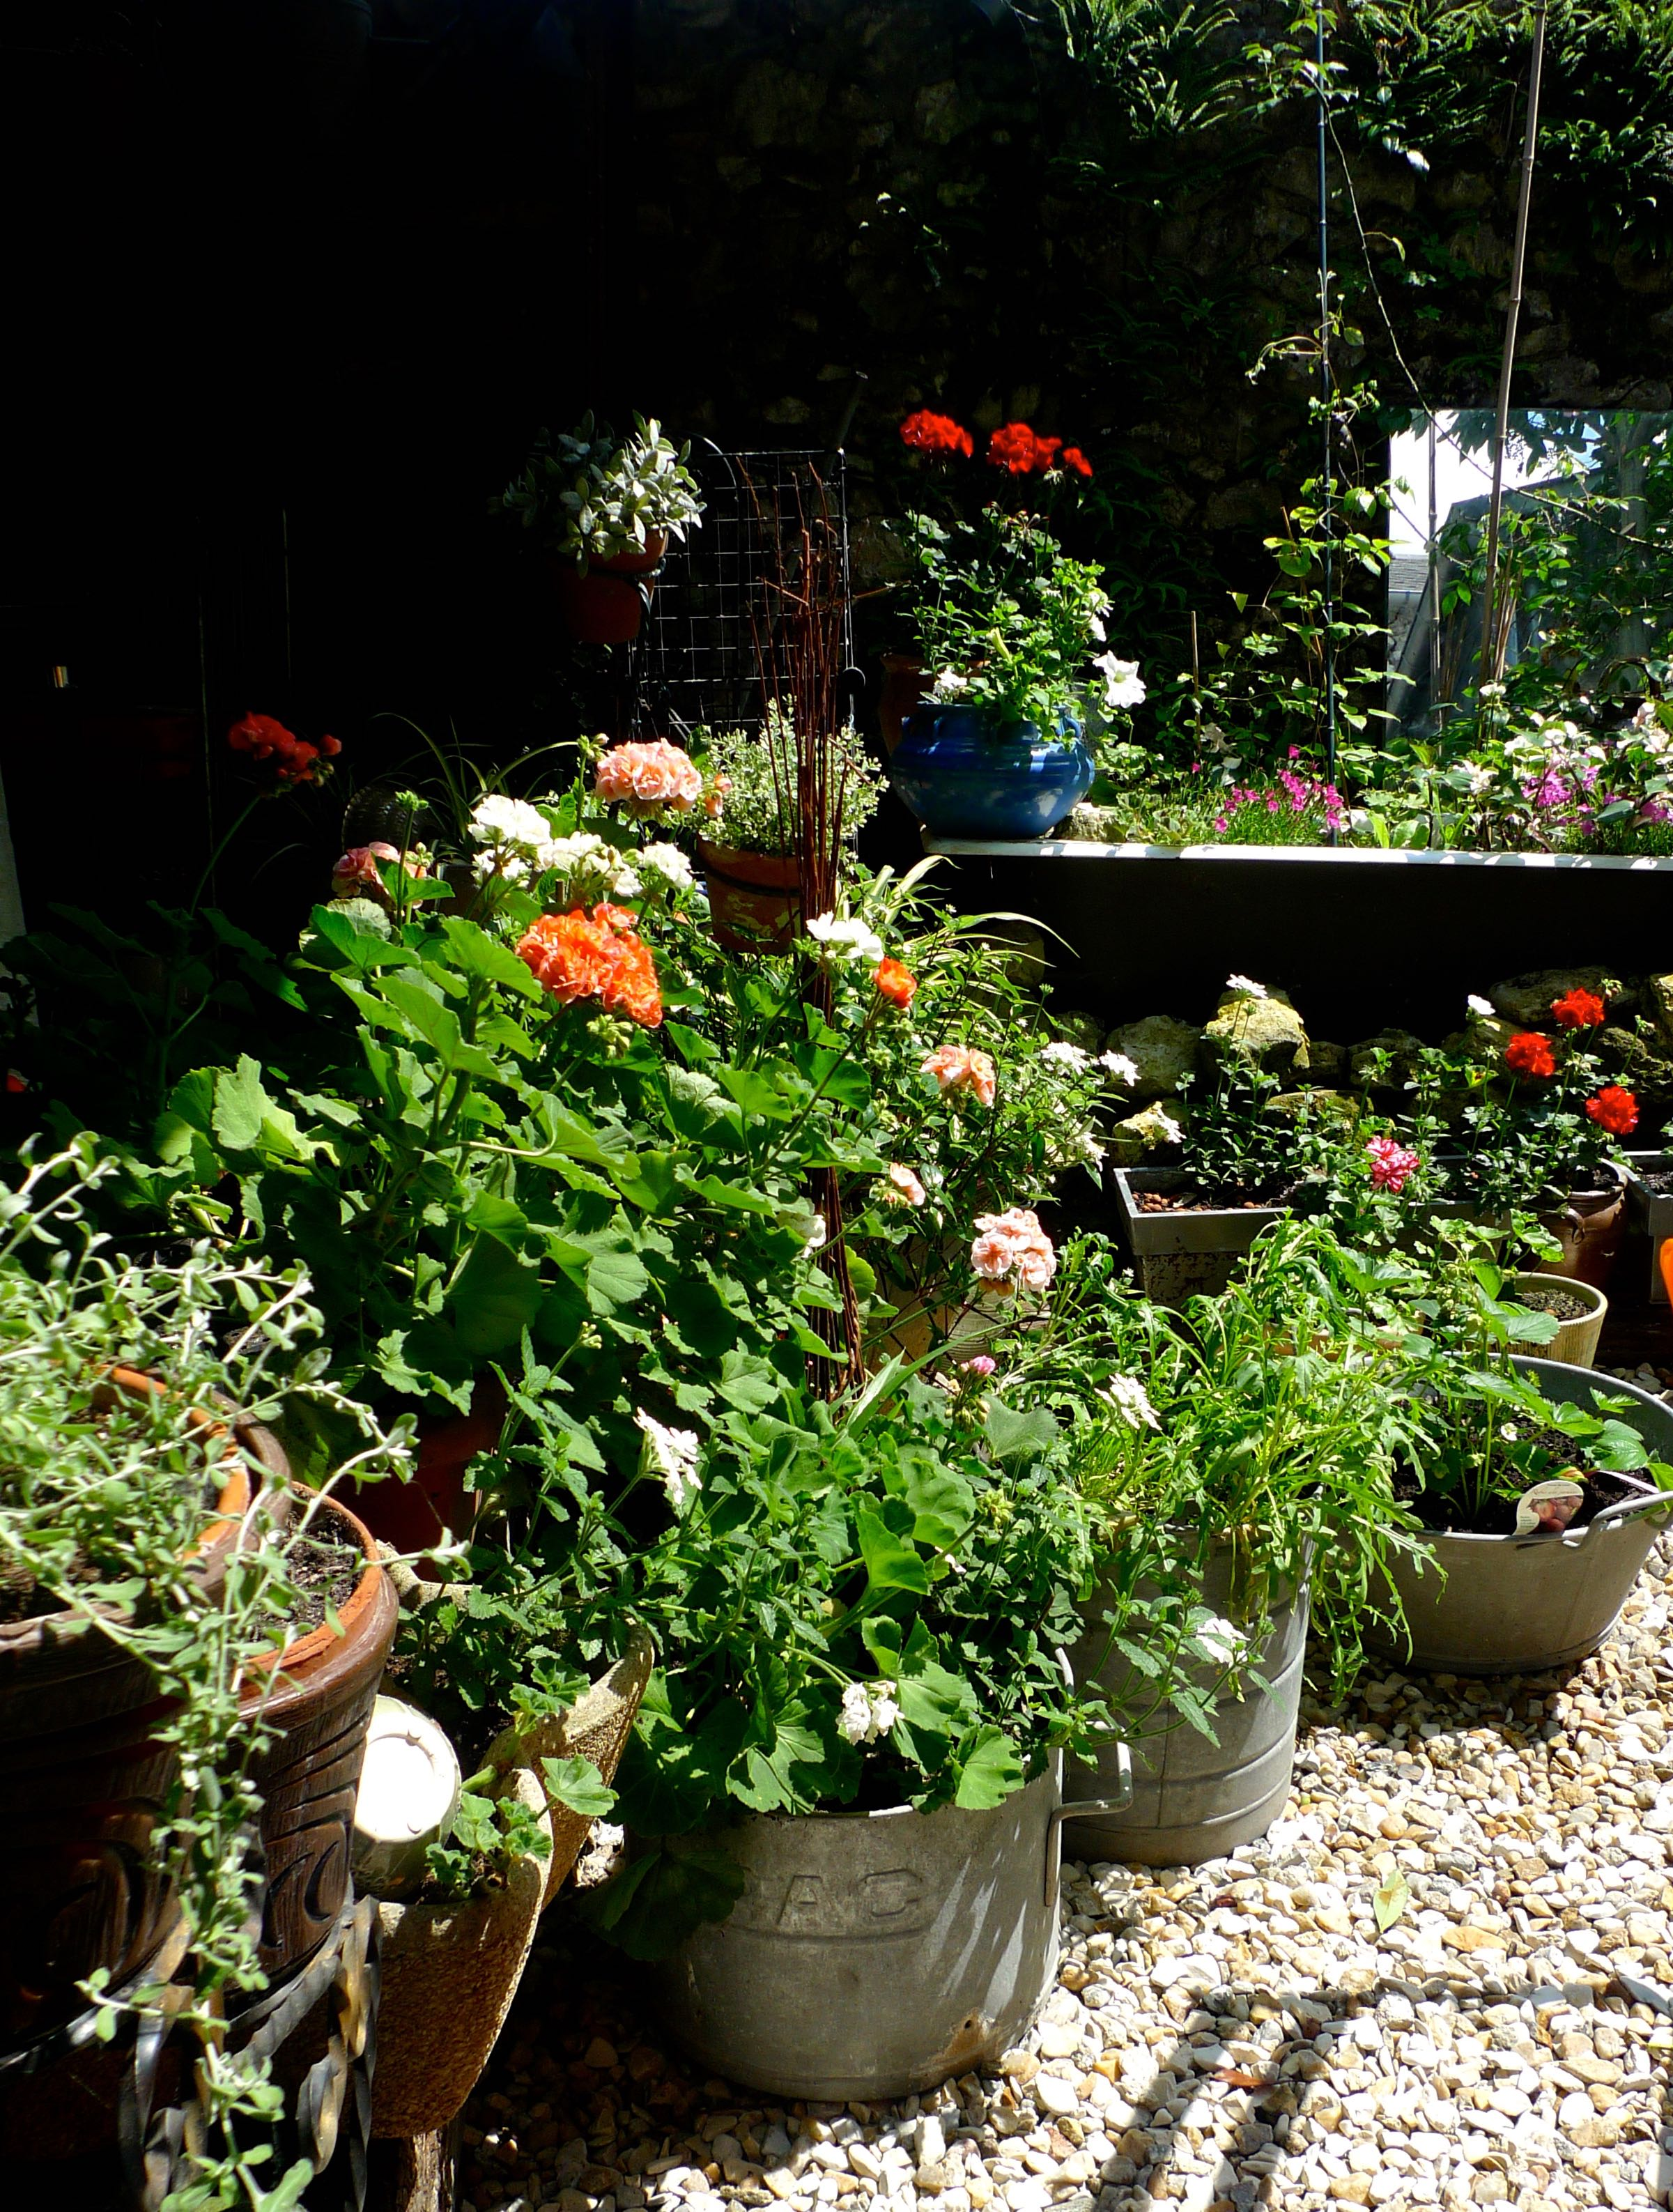 Pots and geraniums